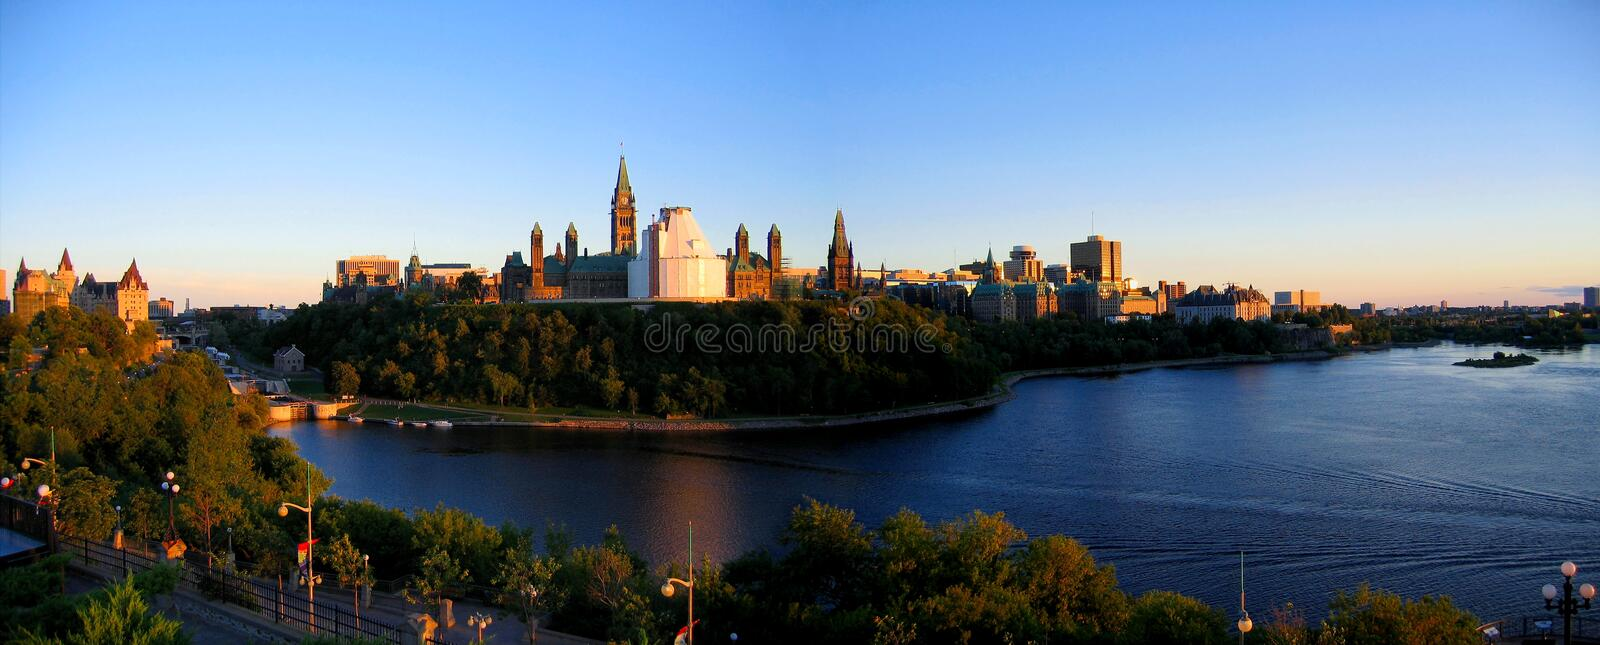 Golden Evening Light on Ottawa River and Parliament Hill, Ottawa, Ontario. Golden evening light shines on Parliament Hill rising steeply from the Ottawa River royalty free stock photography